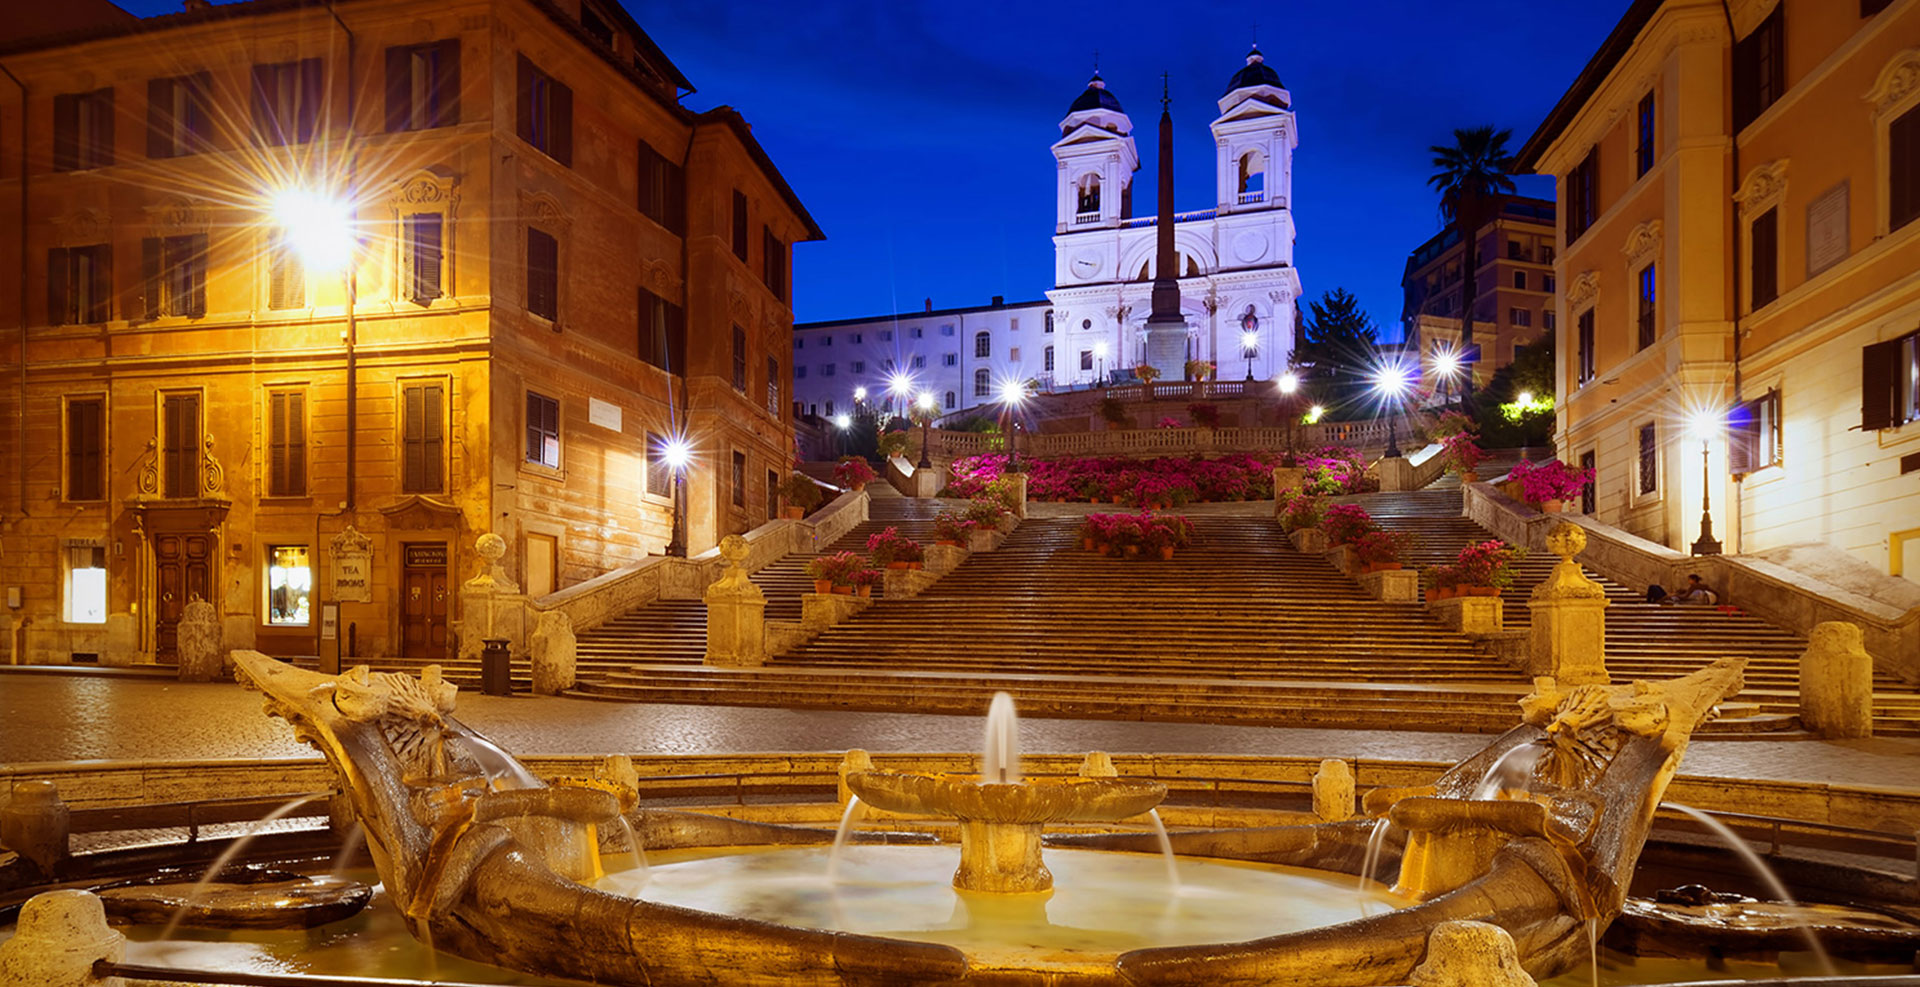 ih-hotels-piazzadispagnaview-guesthouse-roma